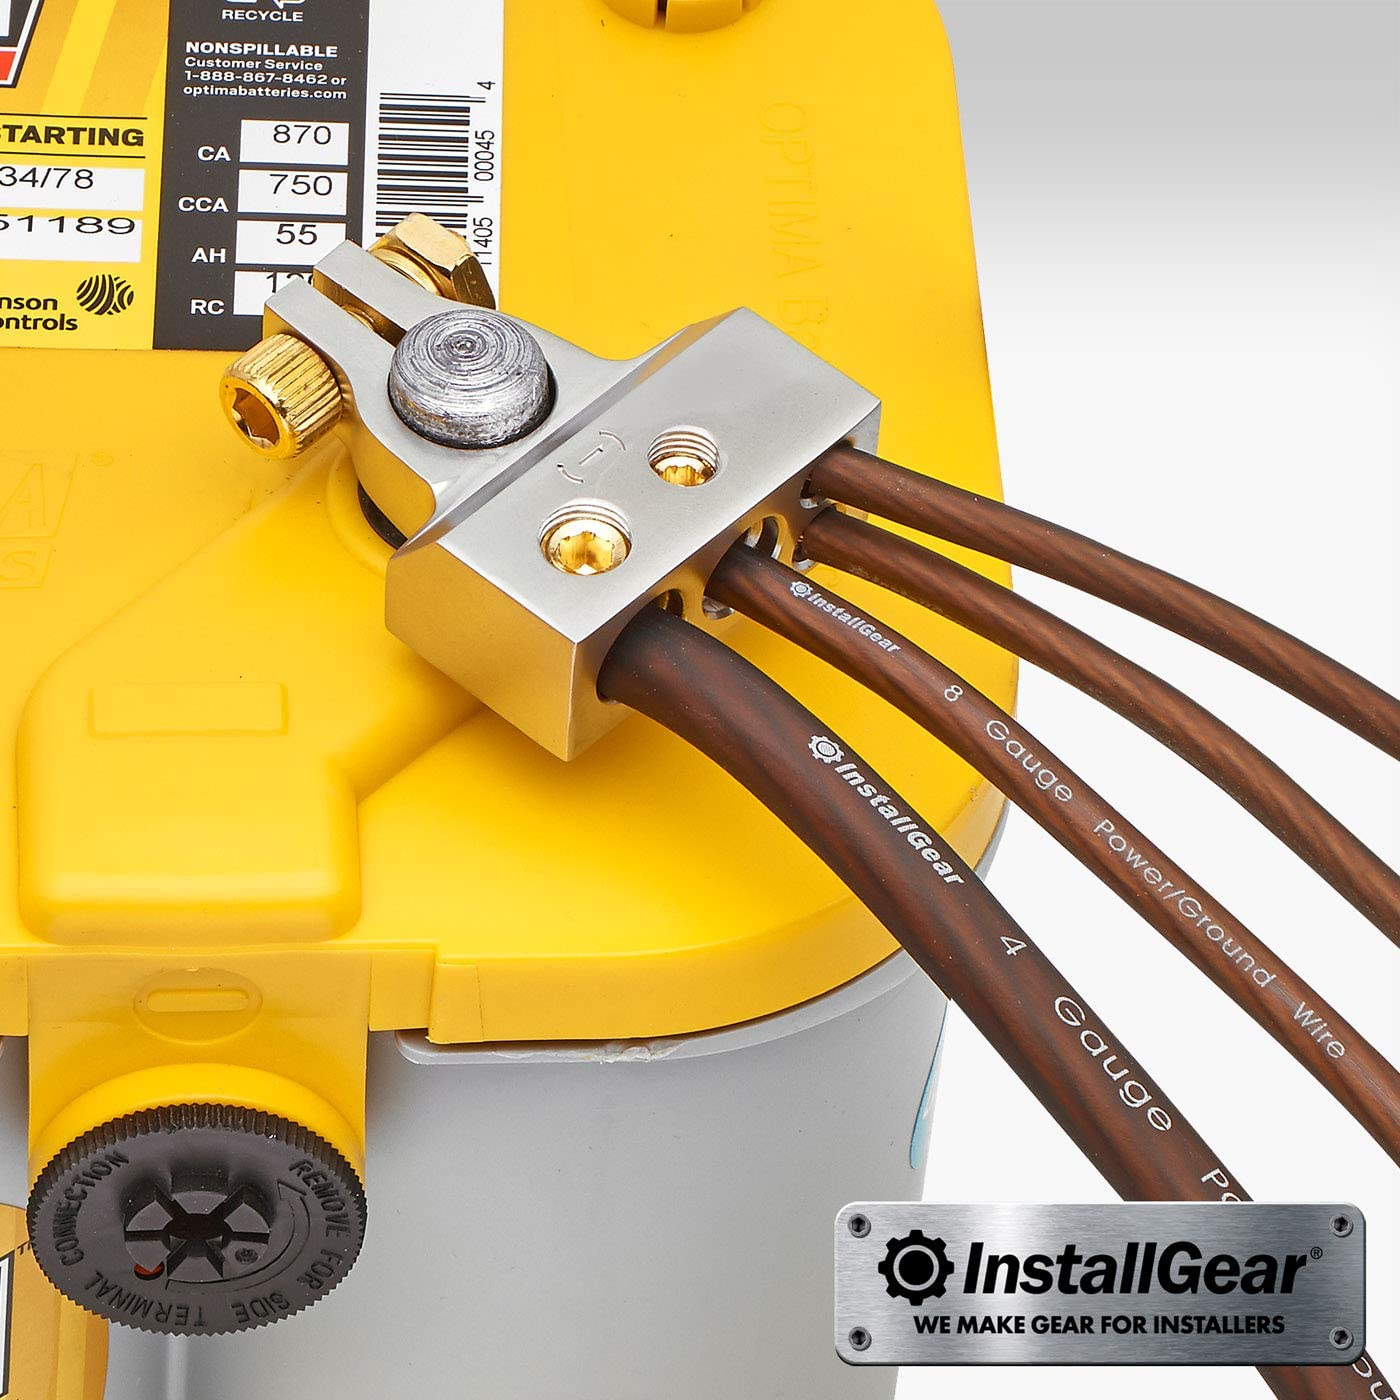 +//- InstallGear 0//4//8 or 10 Gauge Battery Terminals with Shims Positive and Negative